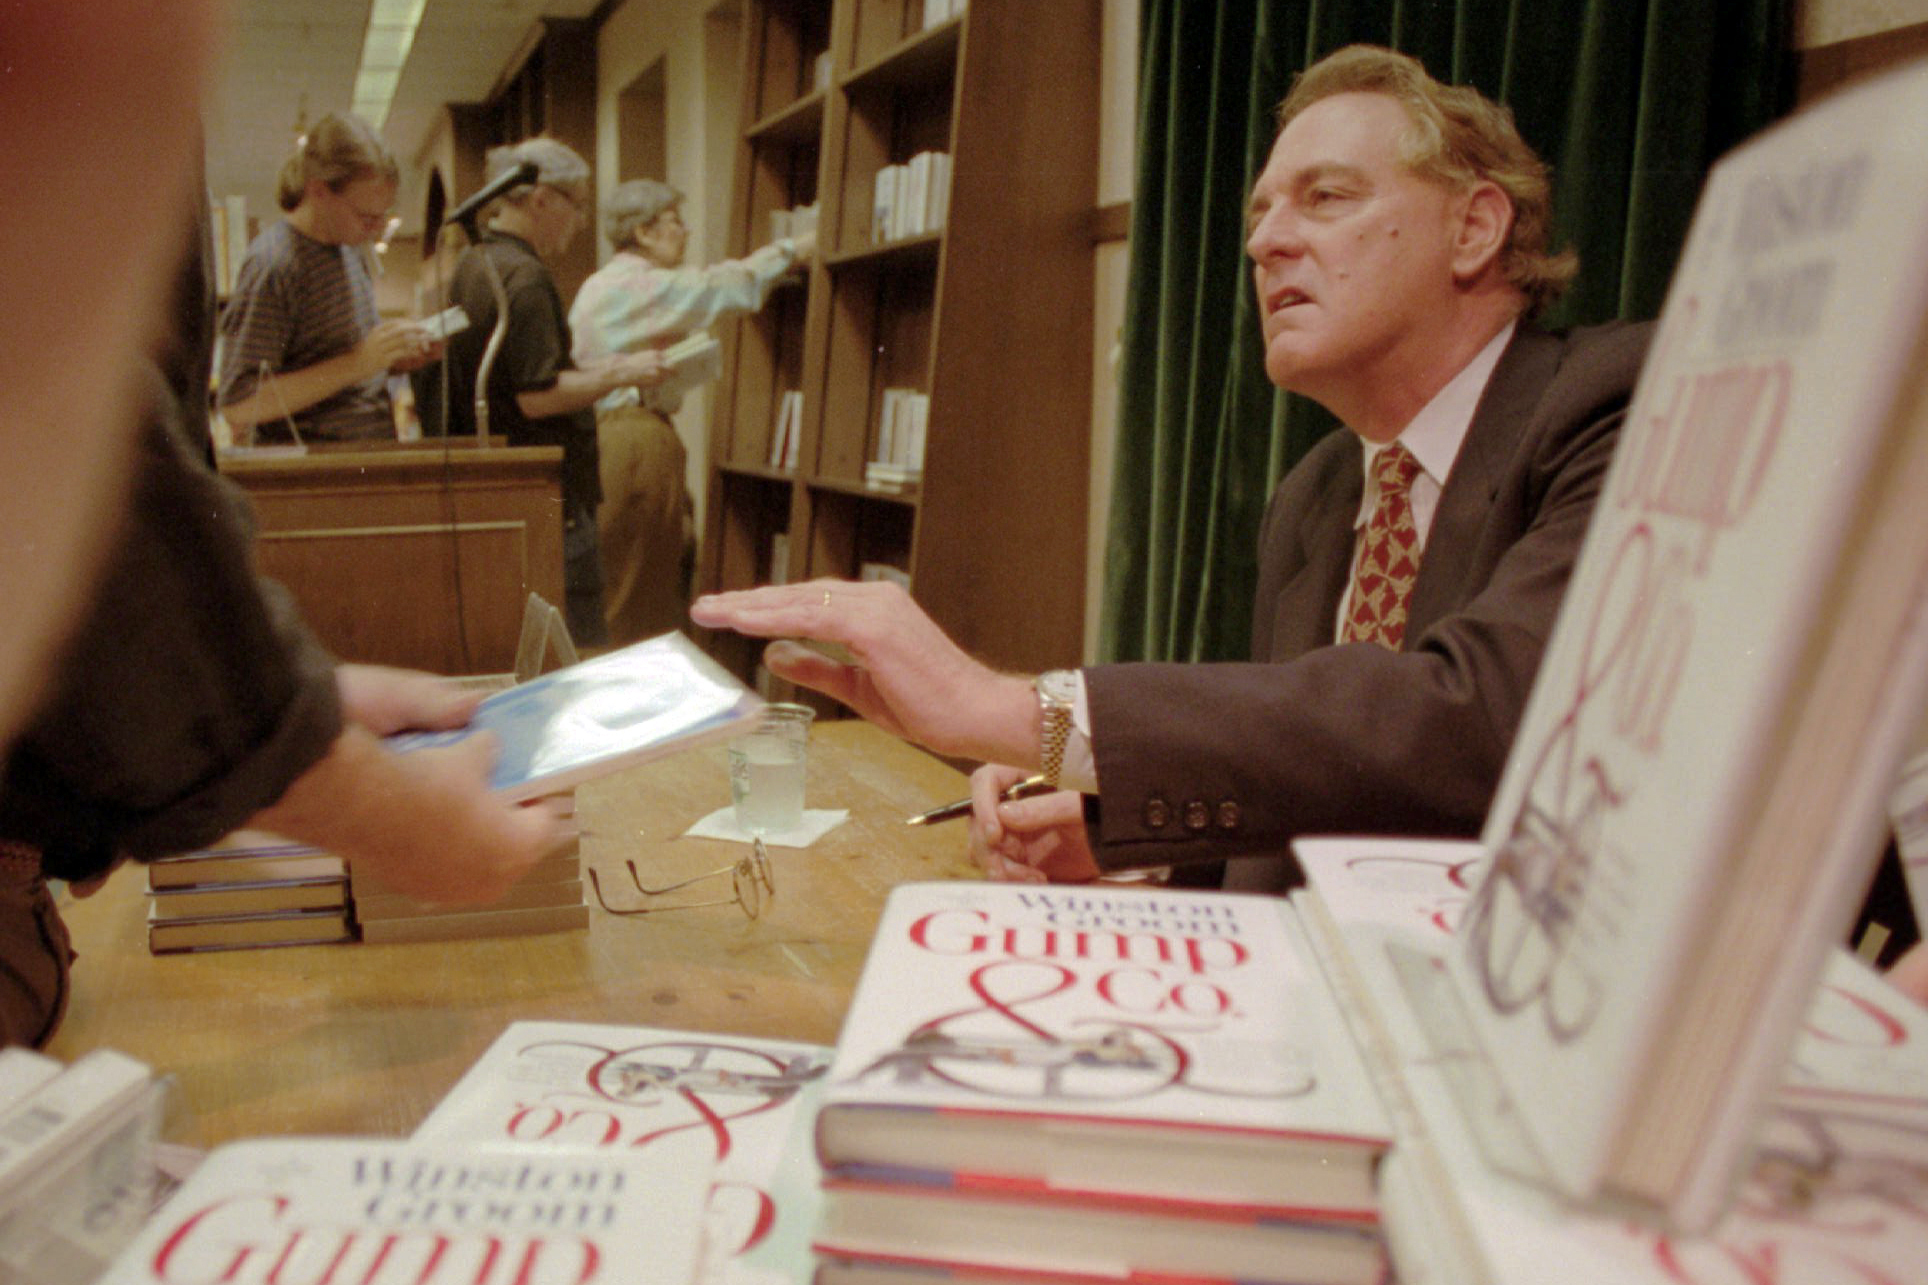 Forrest Gump author Winston Groom dead at 77